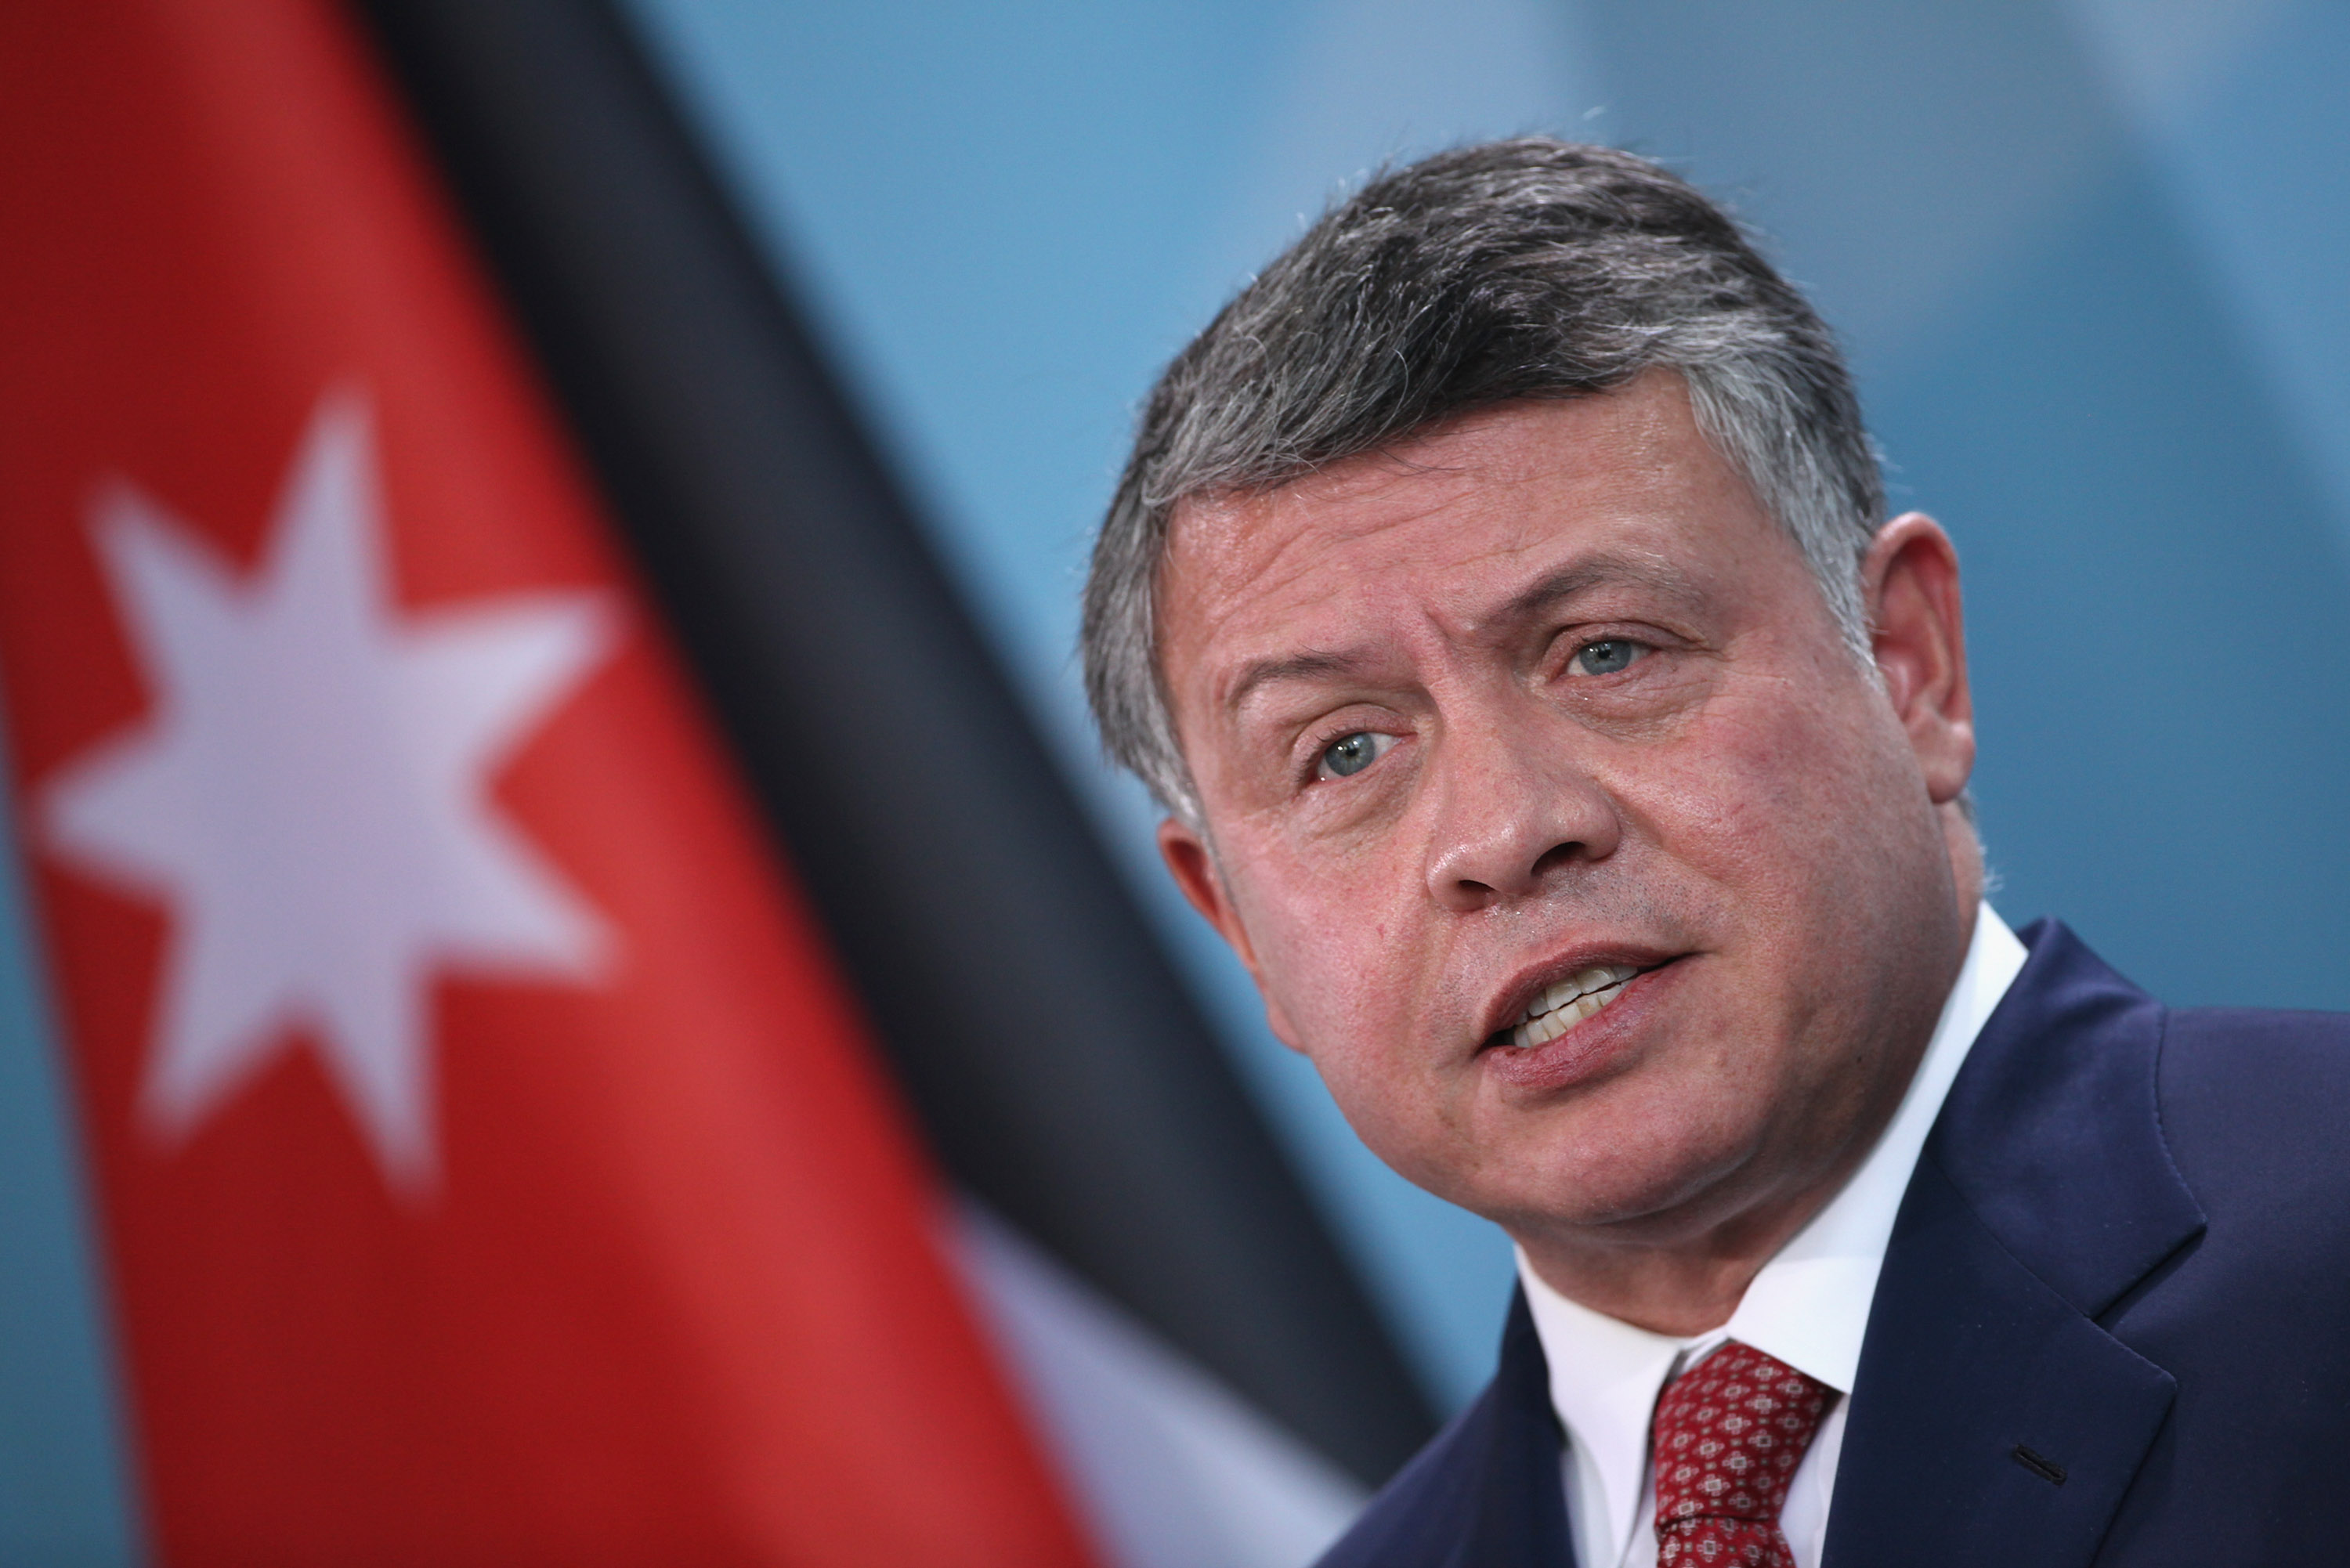 BERLIN, GERMANY - NOVEMBER 29:  King Abdullah II of Jordanspeaks to the media following talks with German Chancellor Angela Merkel at the Chancellery on November 29, 2011 in Berlin, Germany. The two leaders discussed, among other topics, the current situation in Syria.  (Photo by Sean Gallup/Getty Images)